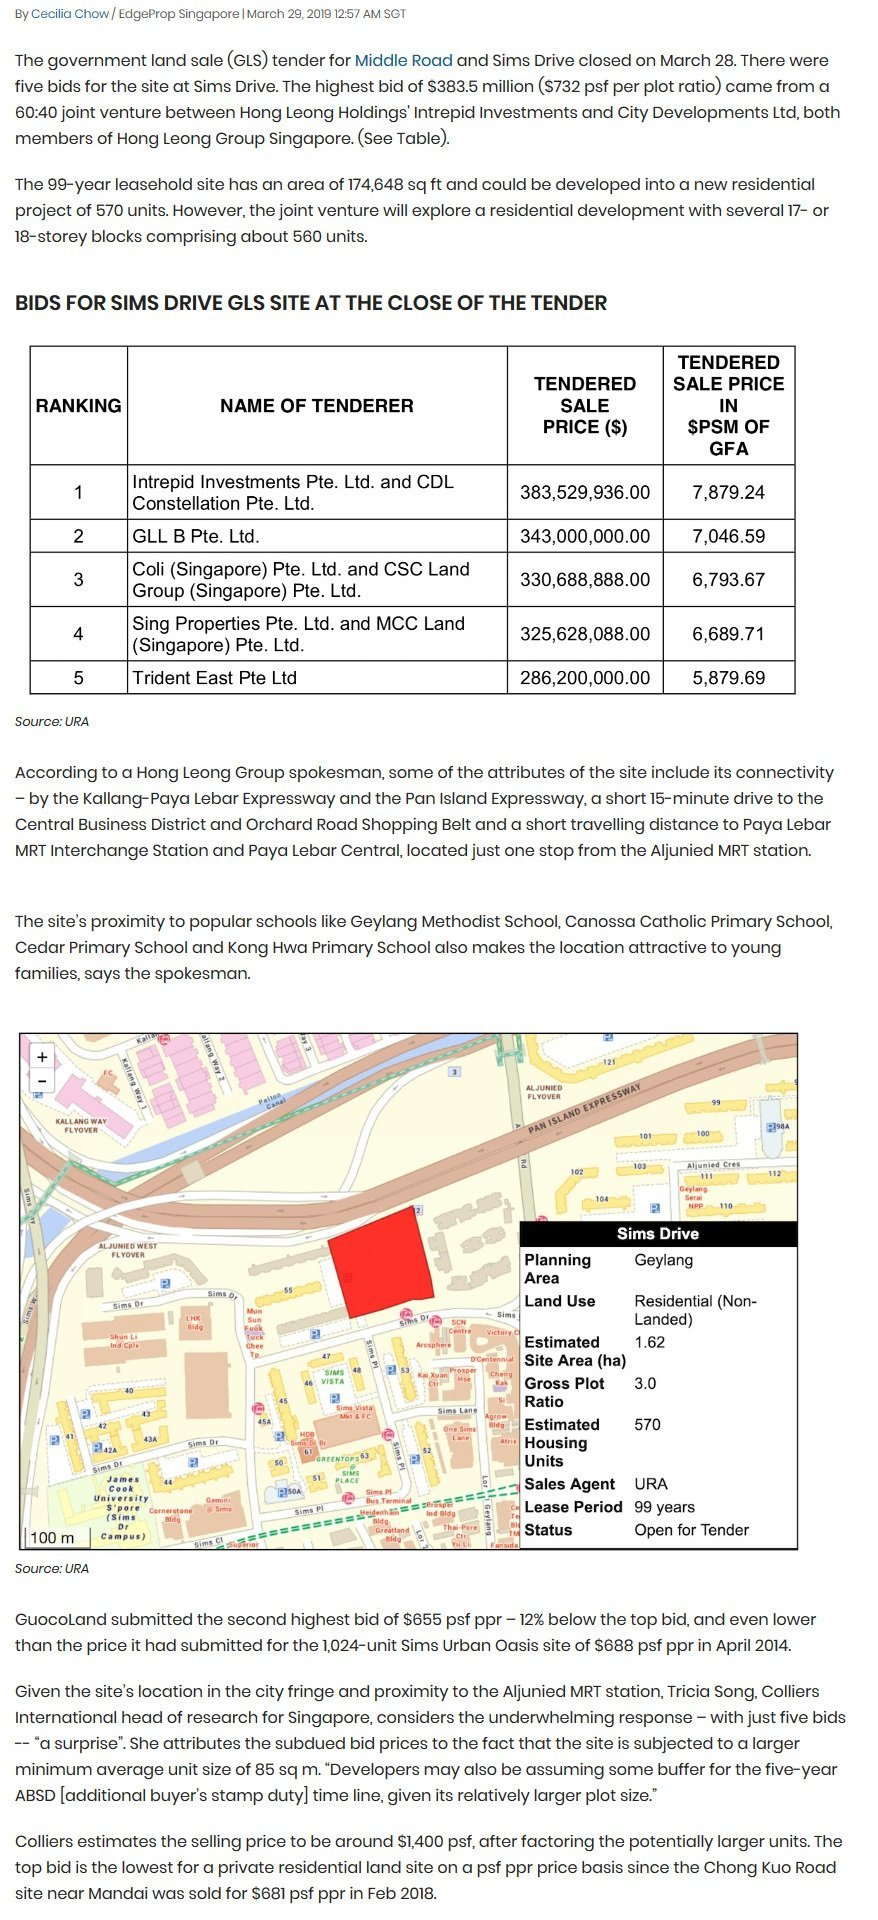 Hong Leong Group bids $383.5 mil for Sims Drive site 5